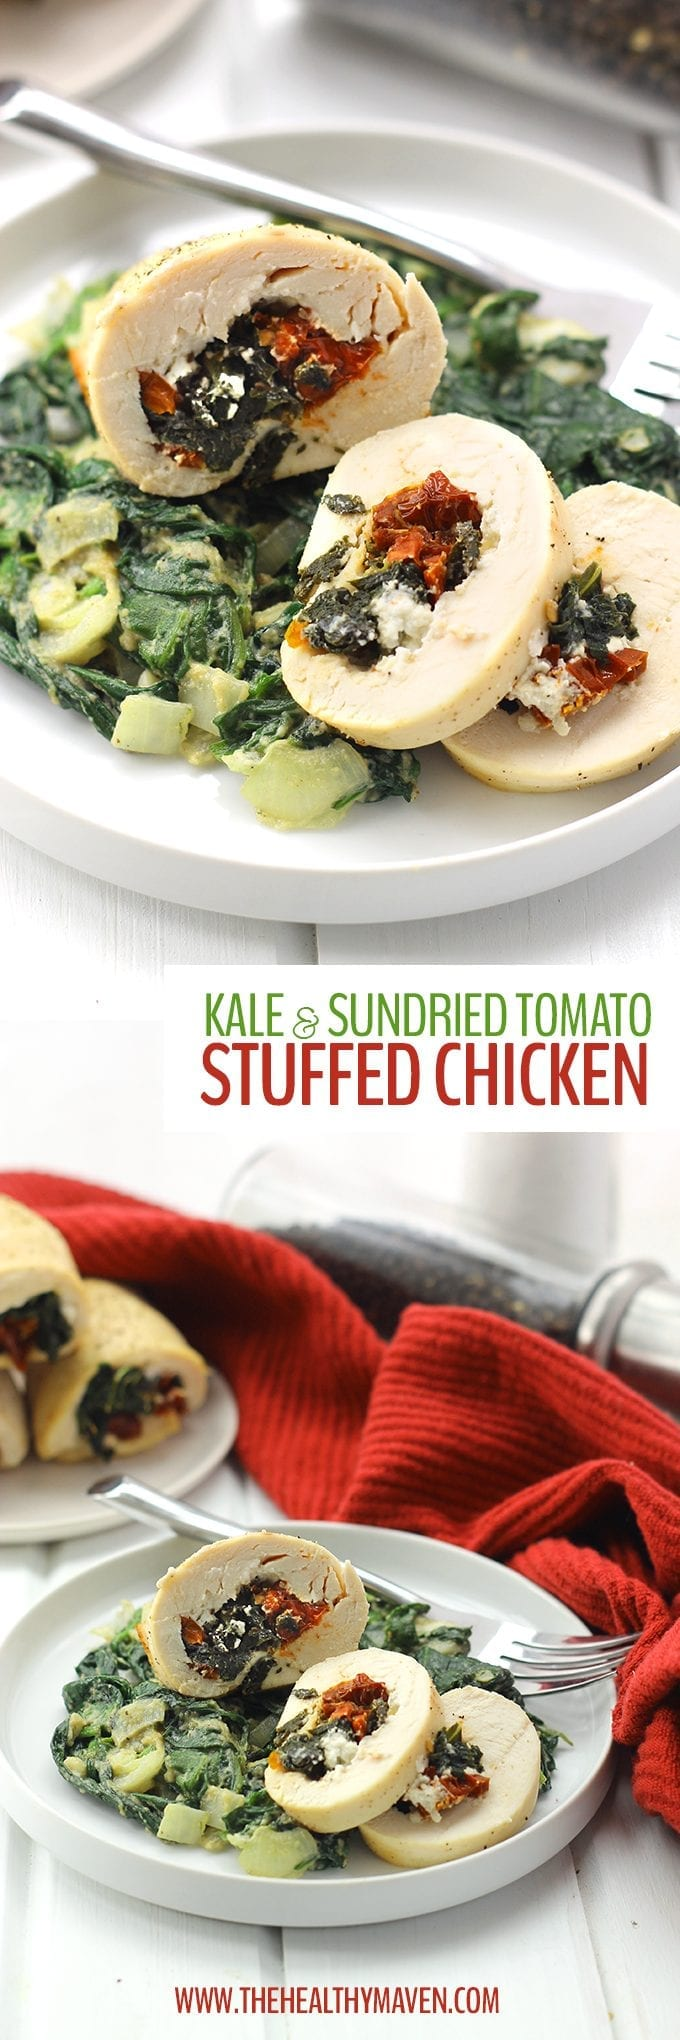 A simple yet flavorful chicken recipe made with just 4 ingredients. This Kale and Sun-Dried Tomato Stuffed Chicken is a hit for an easy weeknight dinner or a fancy weekend dinner party.